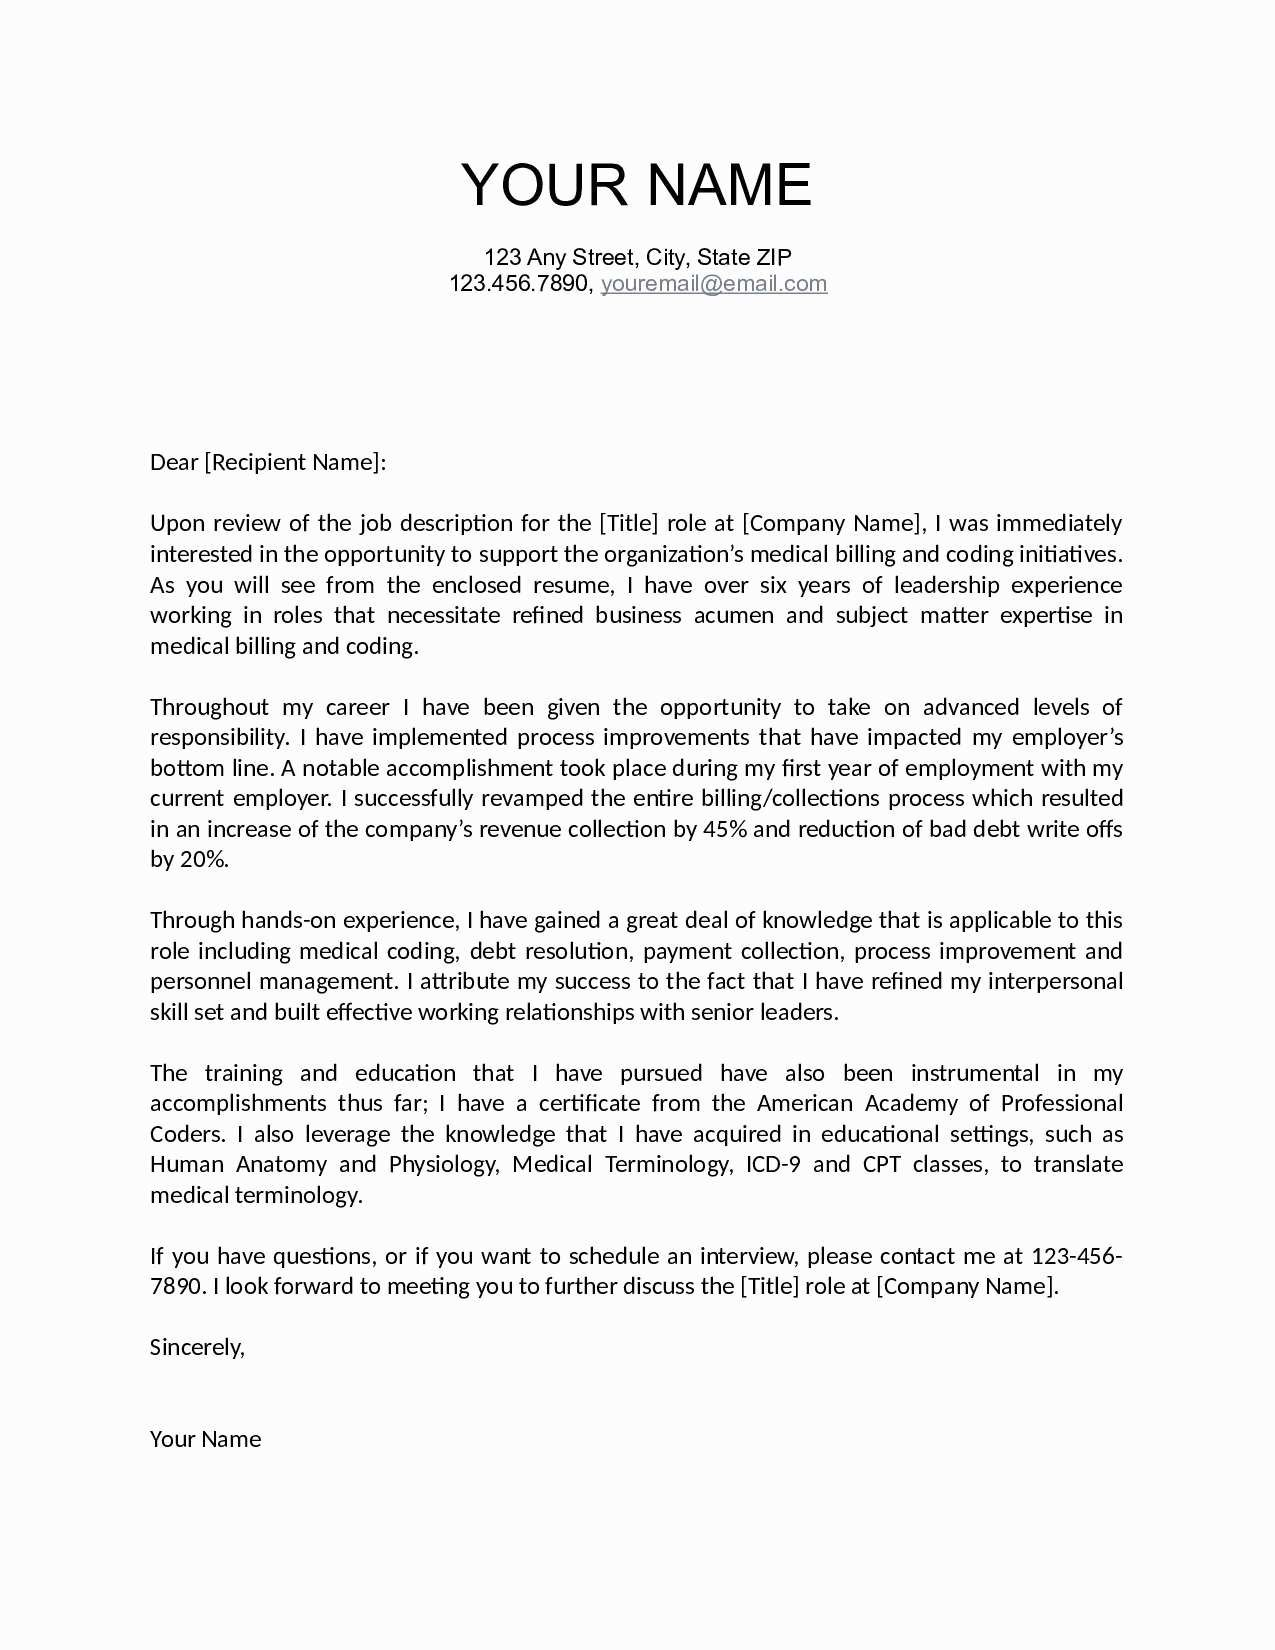 official offer letter template example-Formal Job fer Letter Valid Job Fer Letter Template Us Copy Od Consultant Cover Letter Fungram 3-n